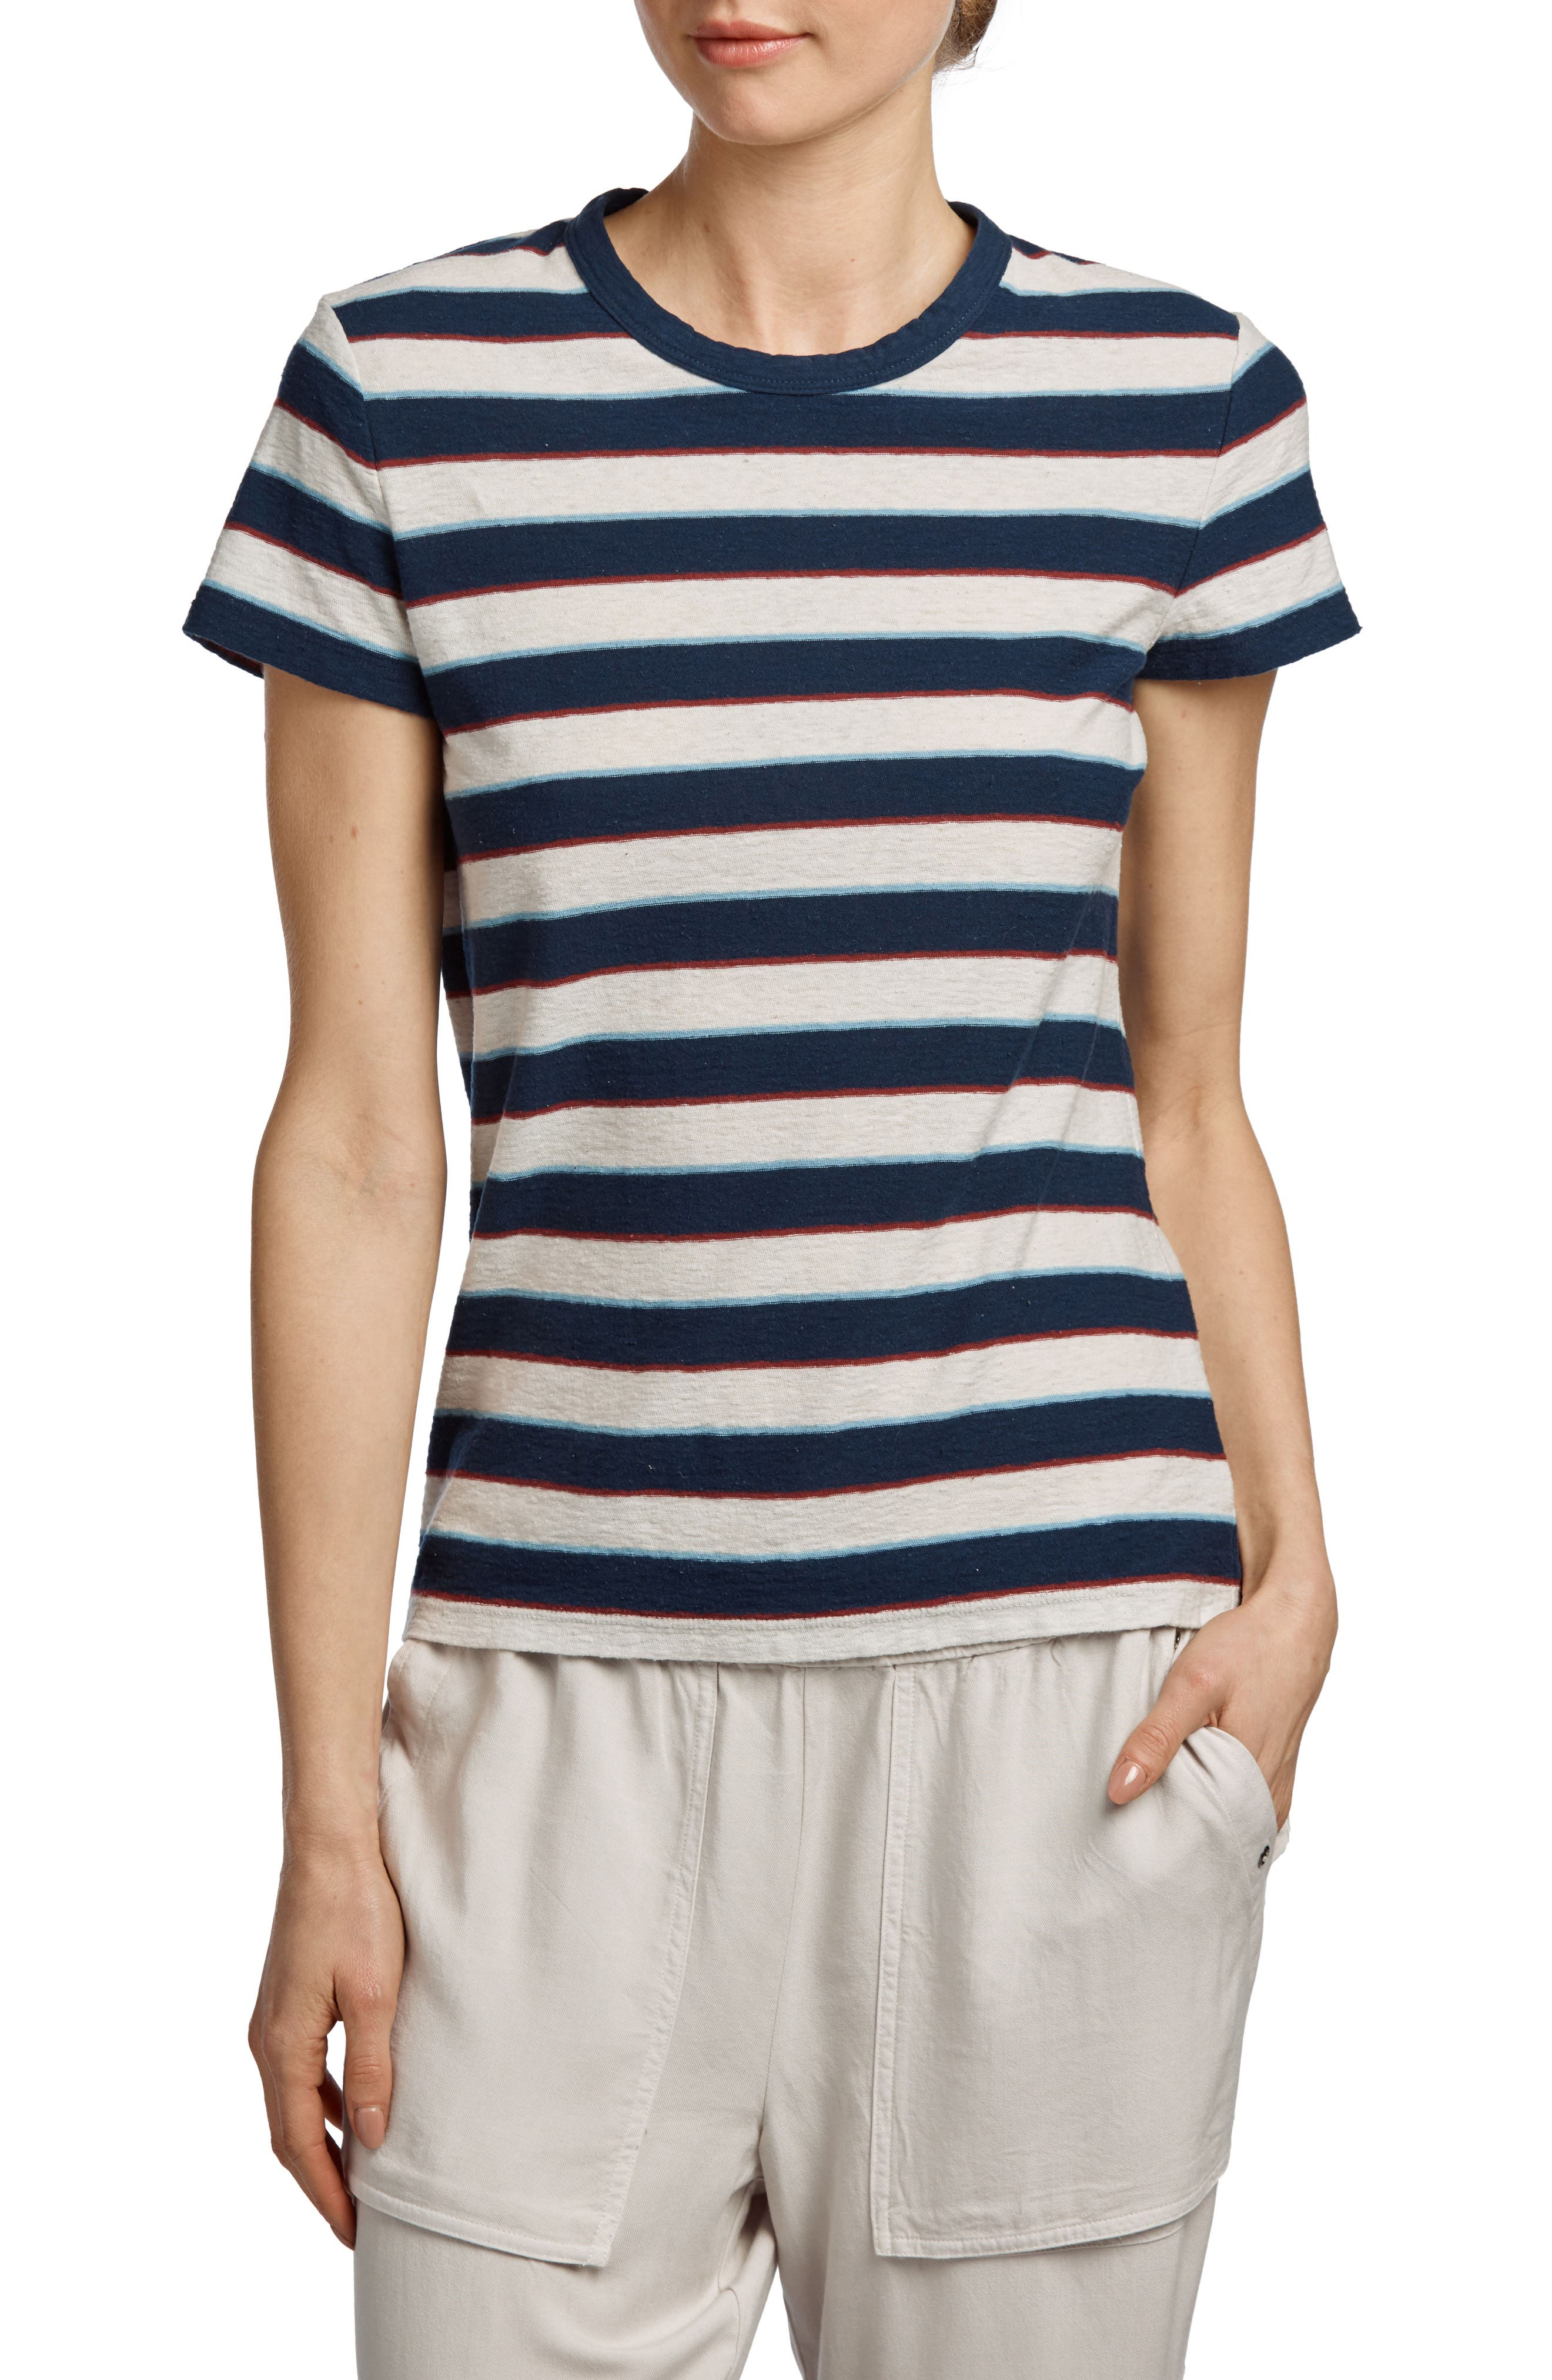 Shrunken Retro Tee,                         Main,                         color, Navy Stripe